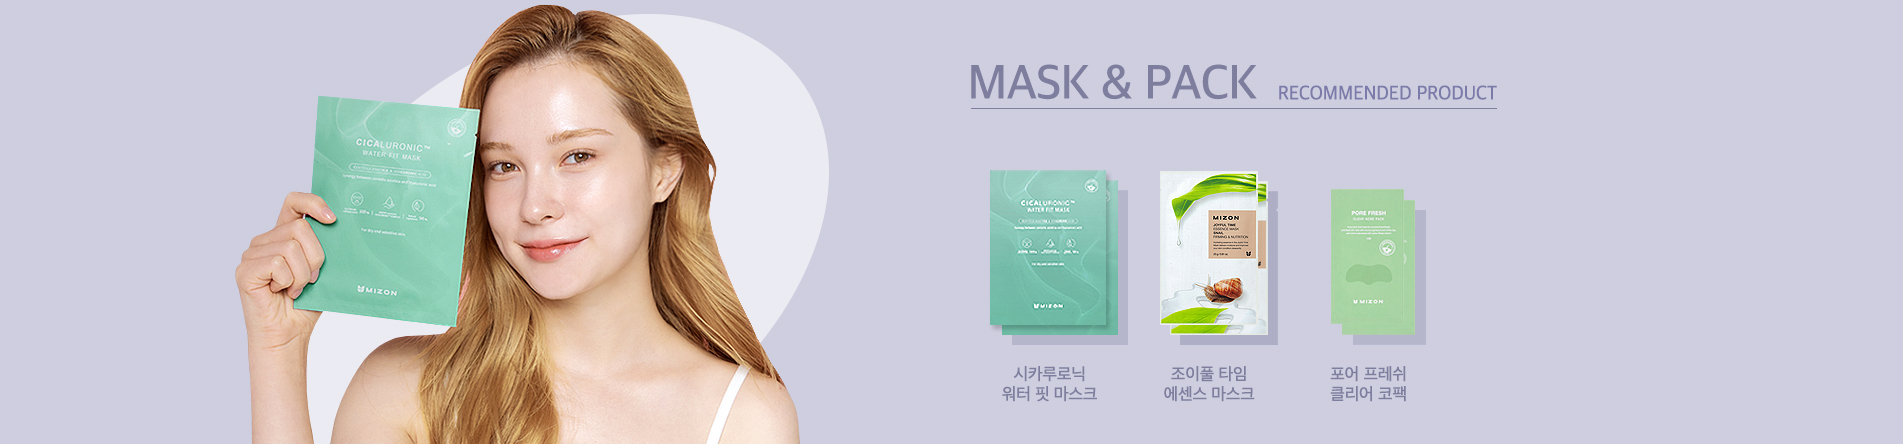 MASK/PACK